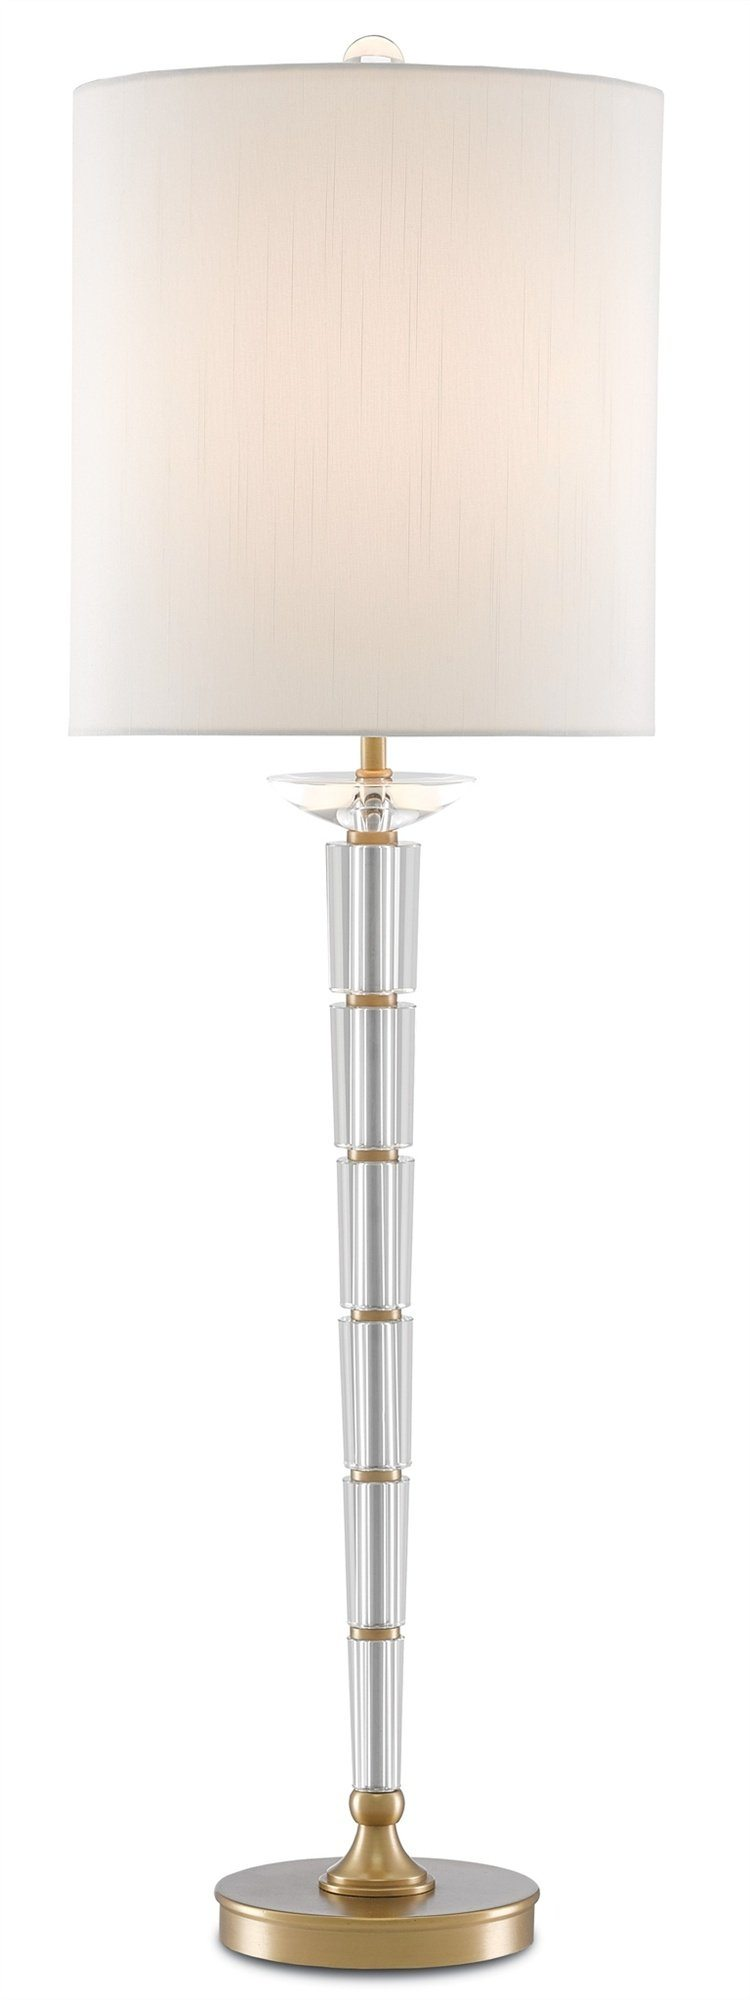 Currey and Company Retreat Table Lamp 6000-0119 - LOVECUP